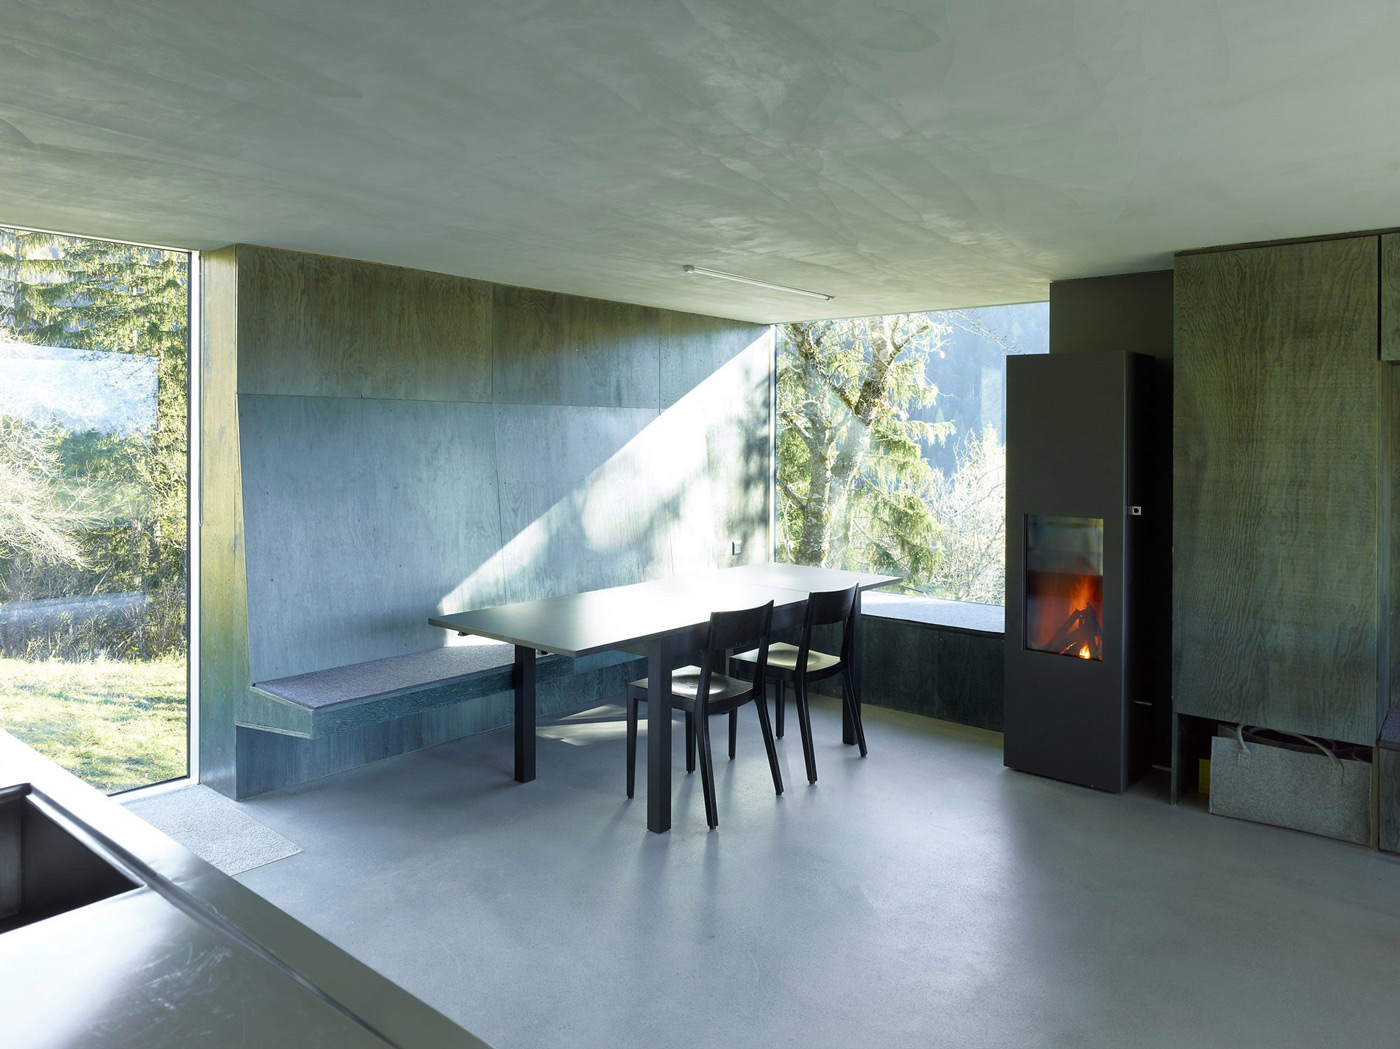 Dining Table, Wood Burner, Fireplace, Holiday Home Renovation in Ayent, Switzerland